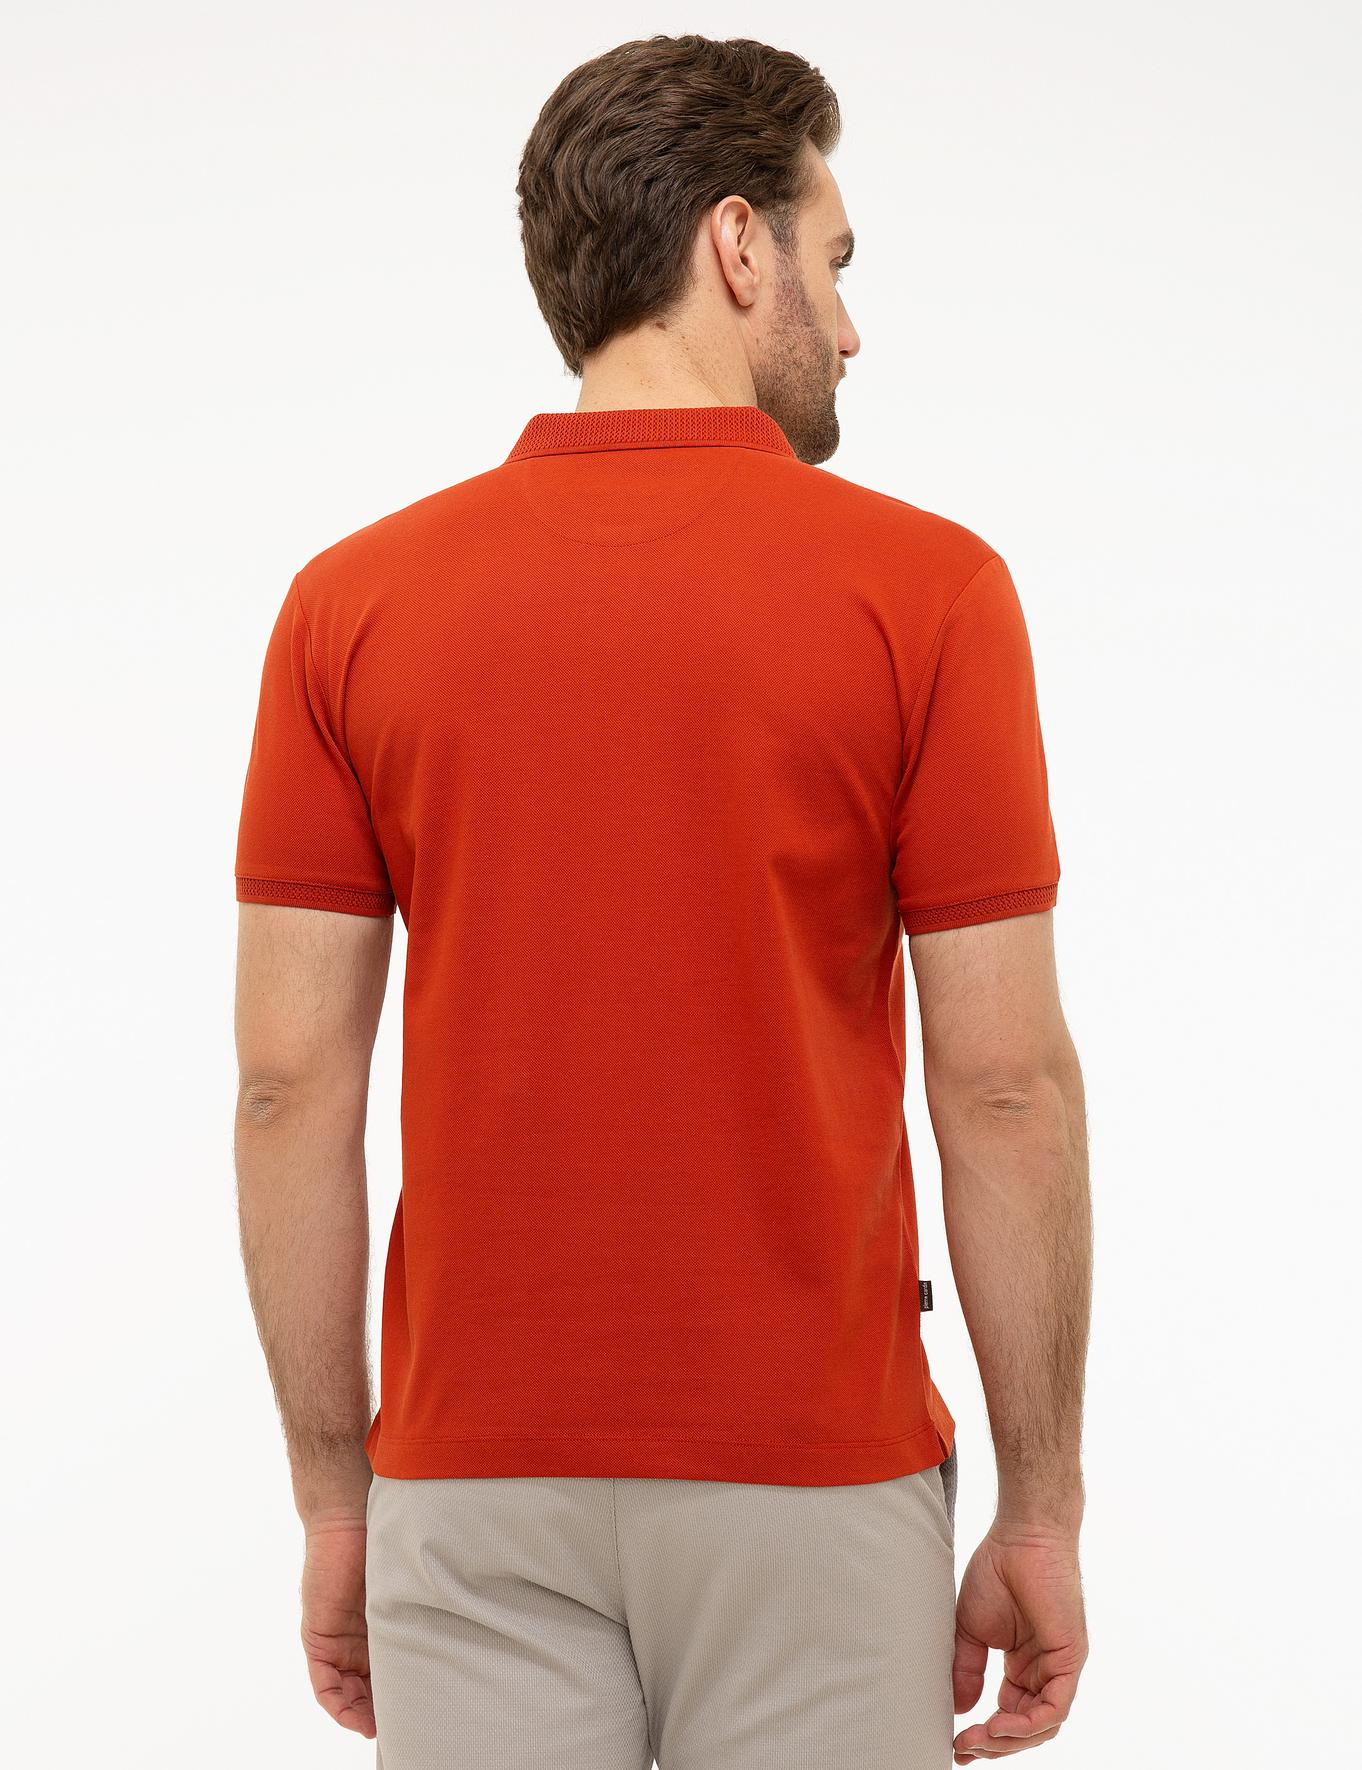 Kiremit Slim Fit Merserize Polo Yaka T-Shirt